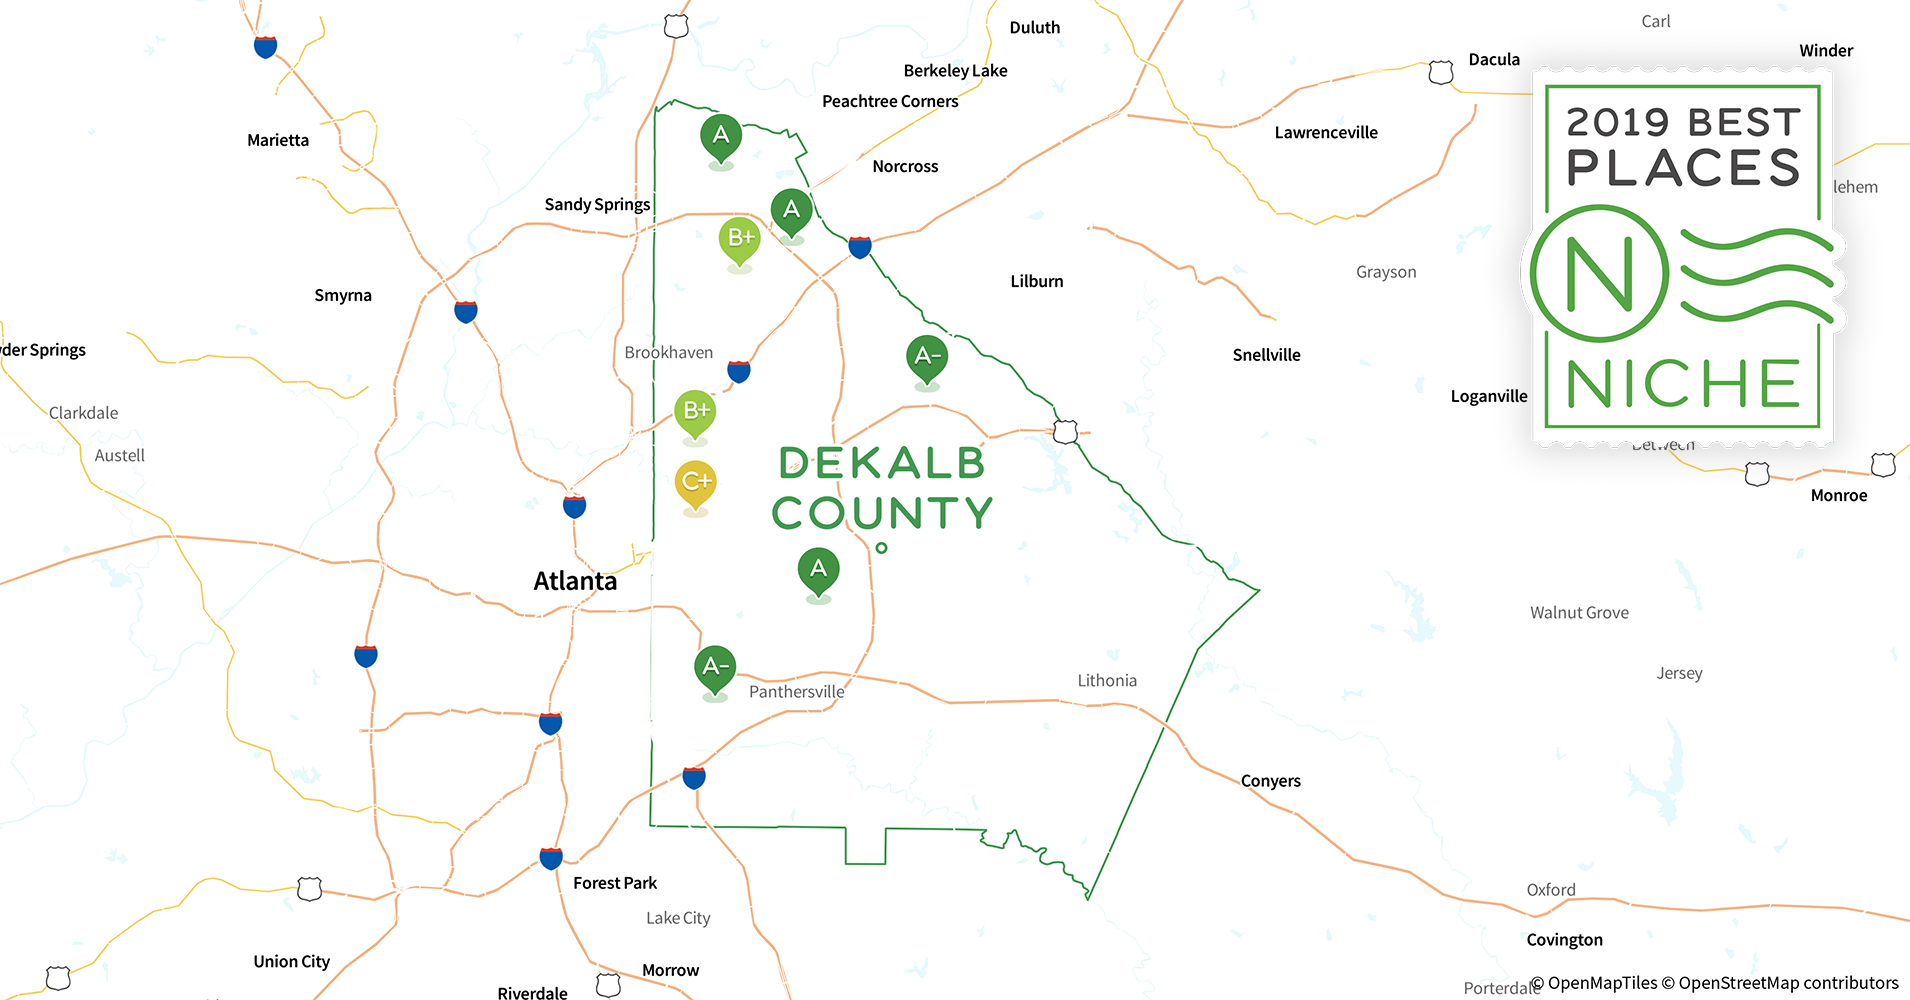 2019 Best Places to Live in DeKalb County, GA - Niche Dekalb County Tax Maps on